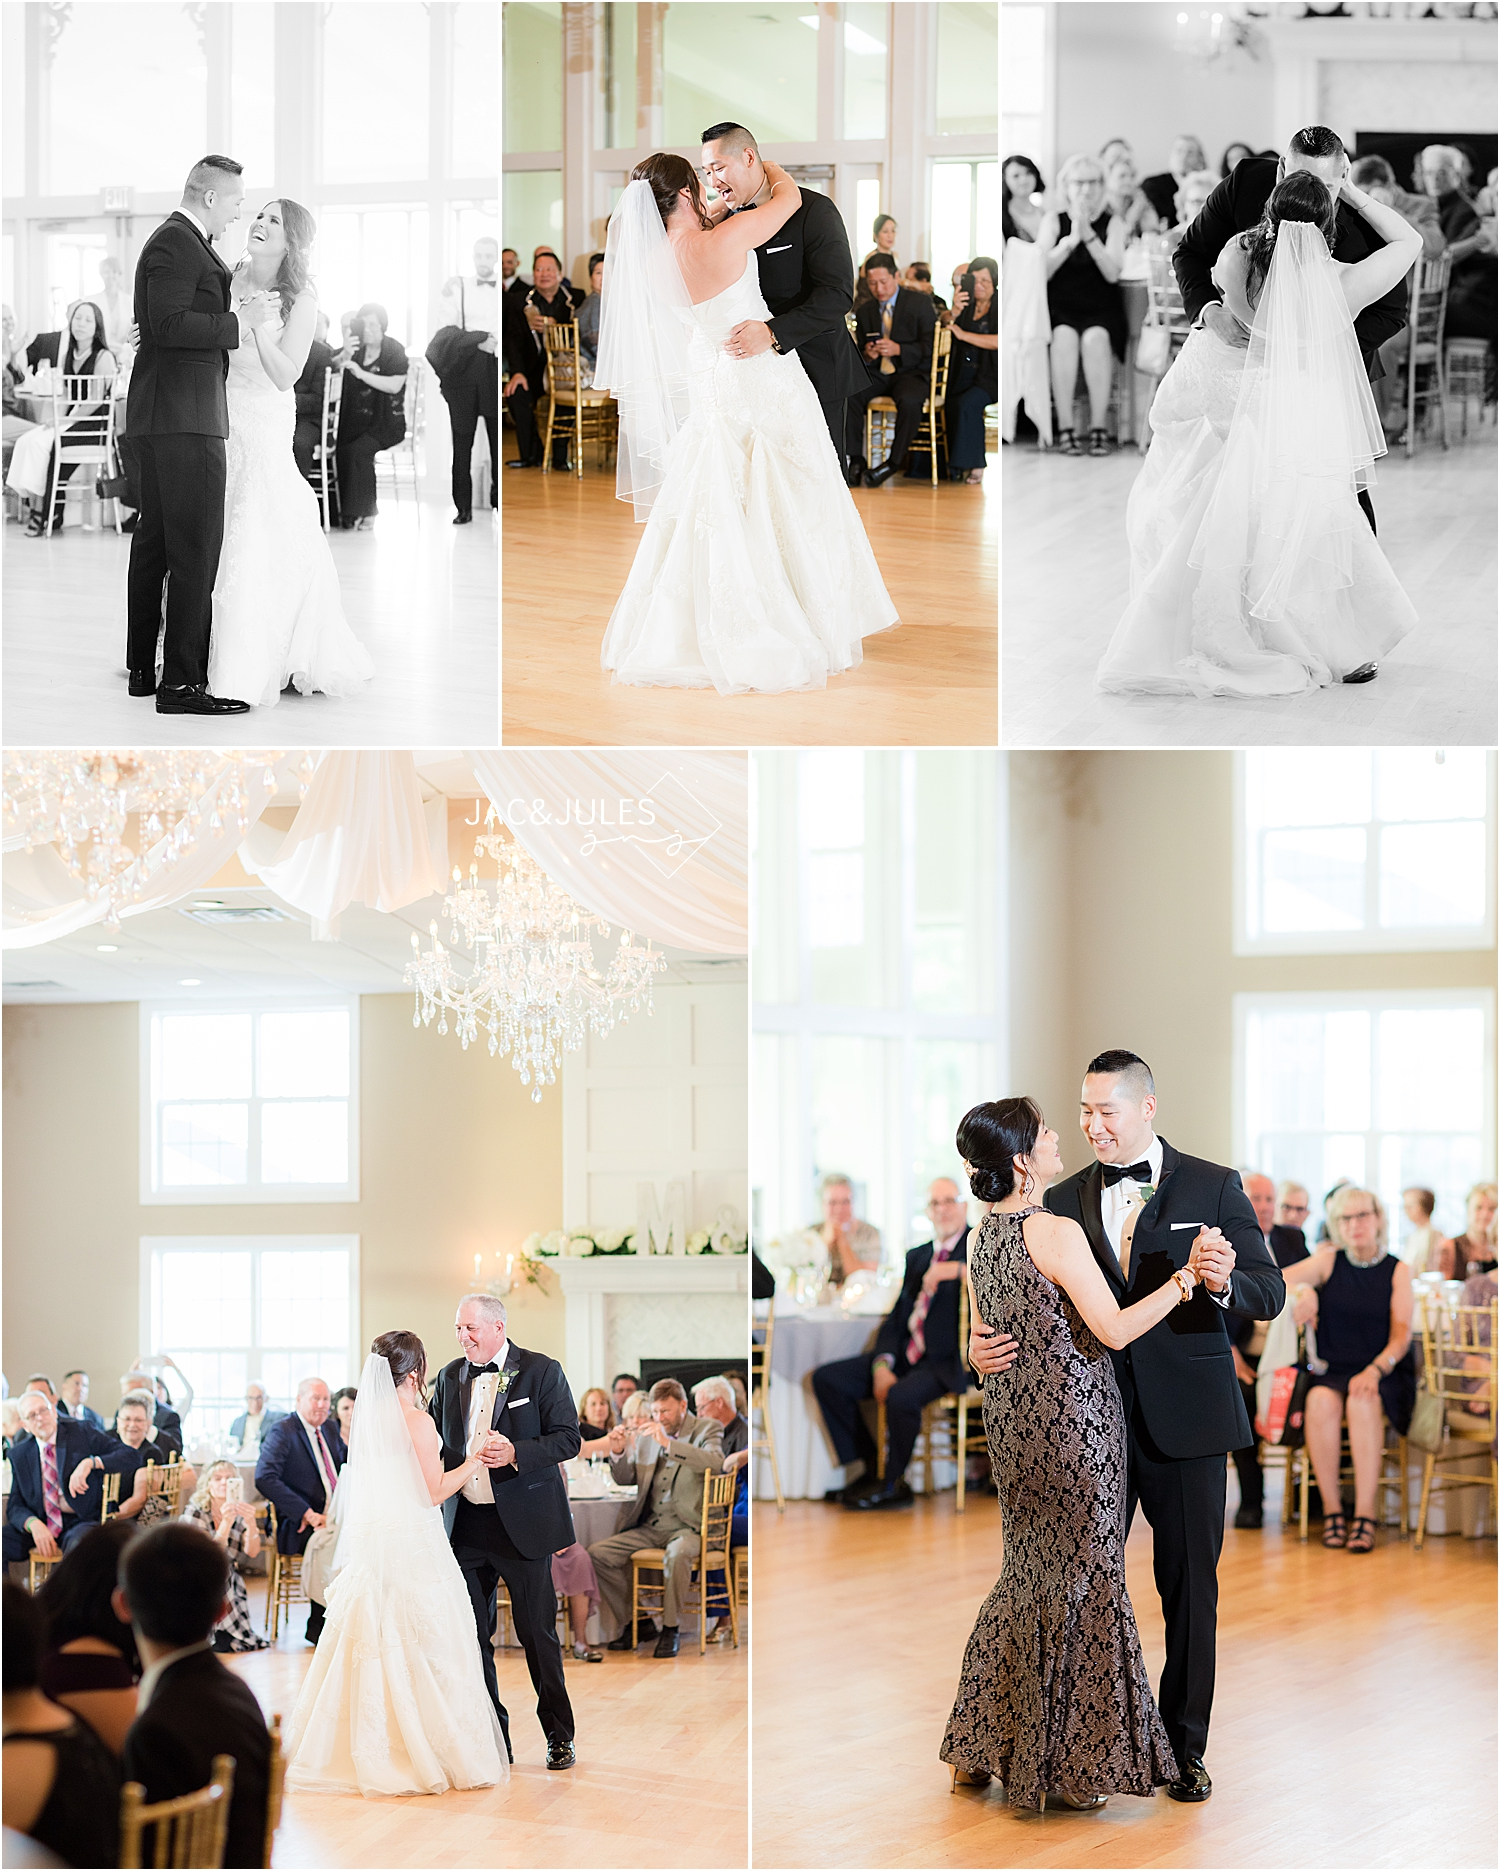 first dances at wedding reception at Skyview Golf Club